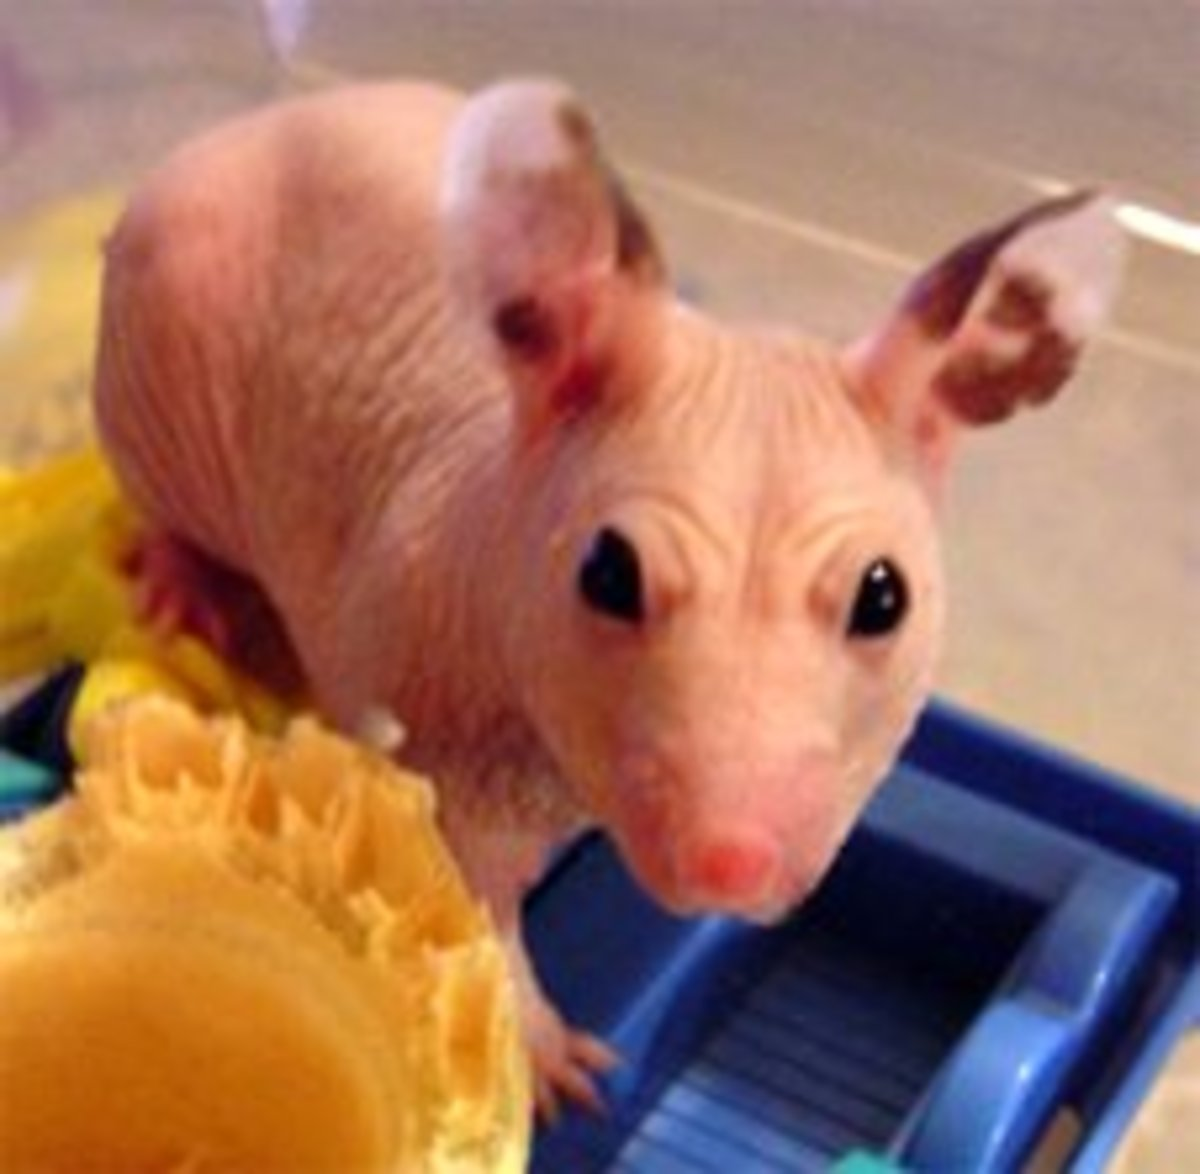 6 Hairless Animals That Will Freak You Out